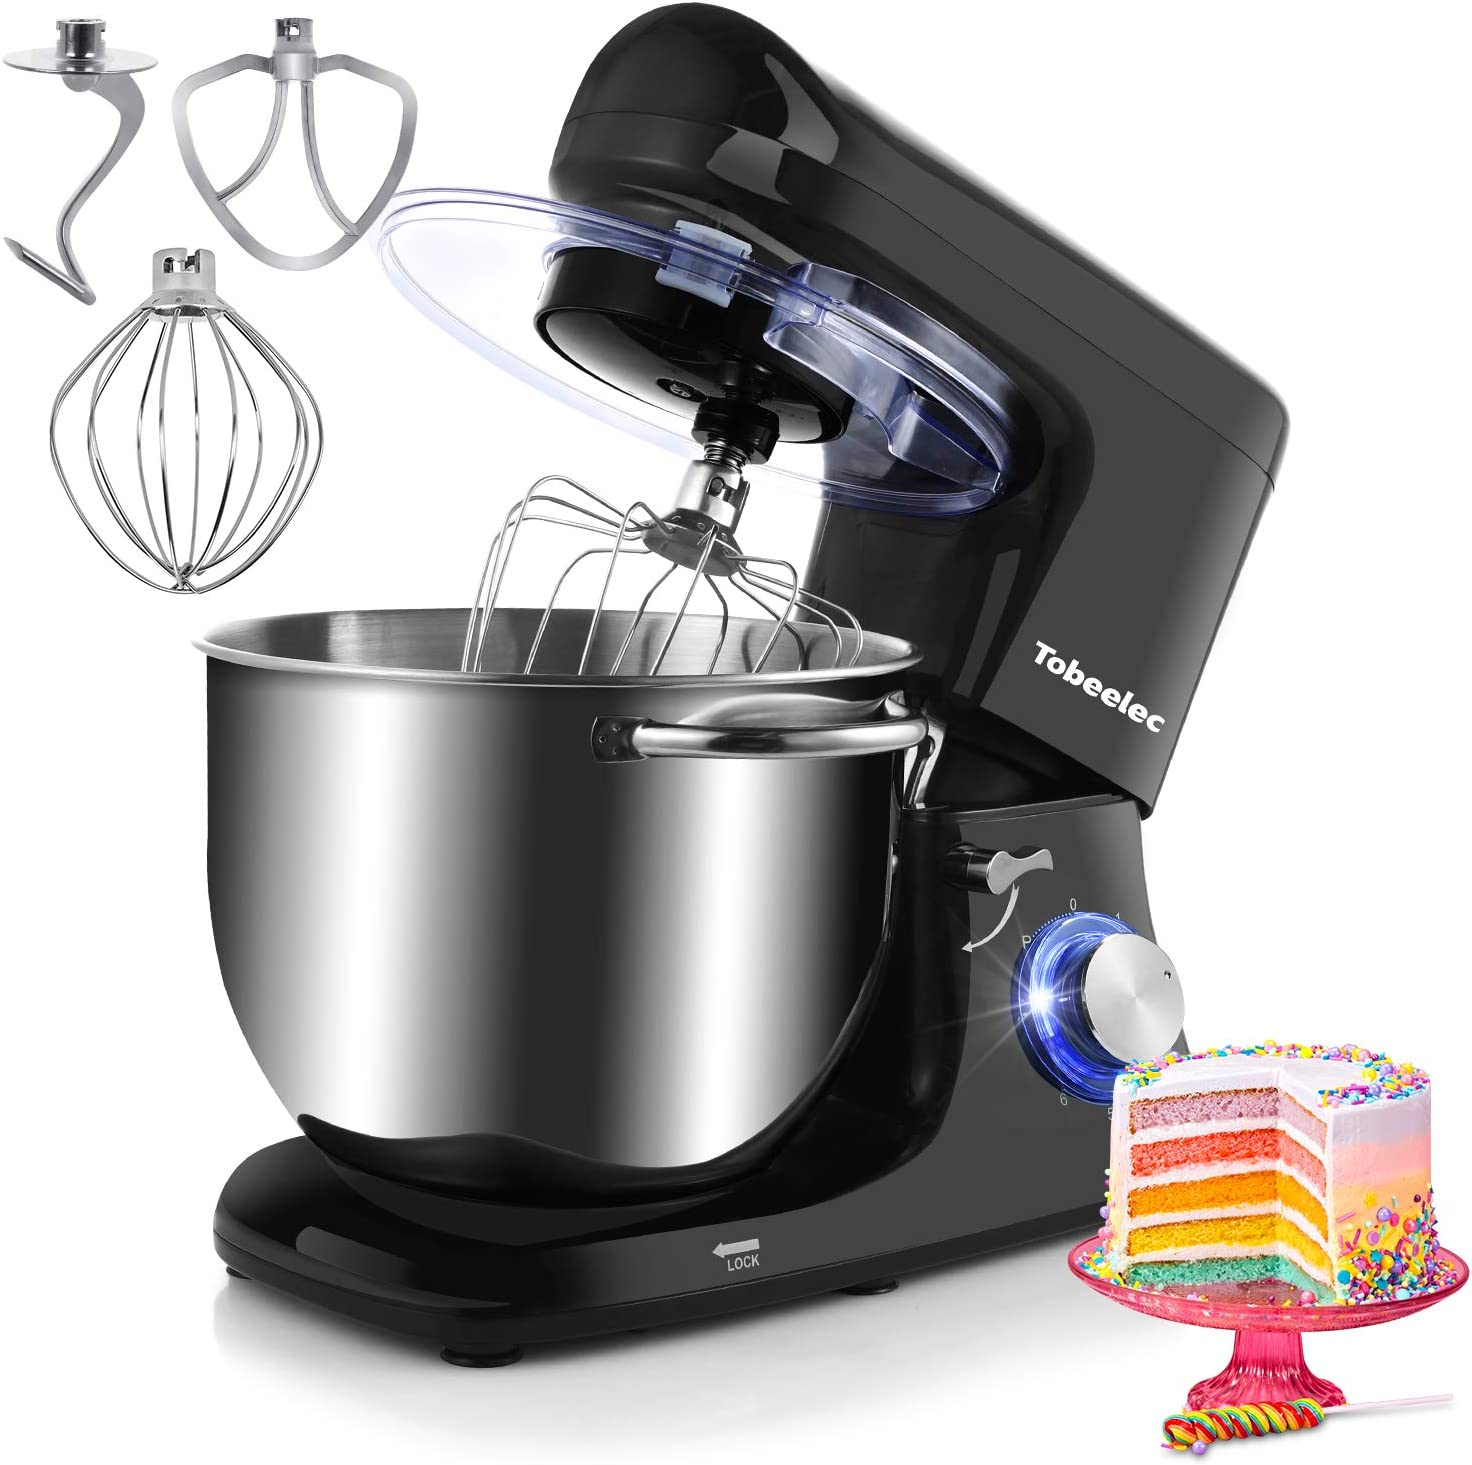 Tobeelec Stand mixer, 7.4QT Electric Kitchen Mixer, 660W 6-Speed Tilt-Head Food Mixer with Dough Hook, Wire Whip, Beater & Splash Guard (Black)